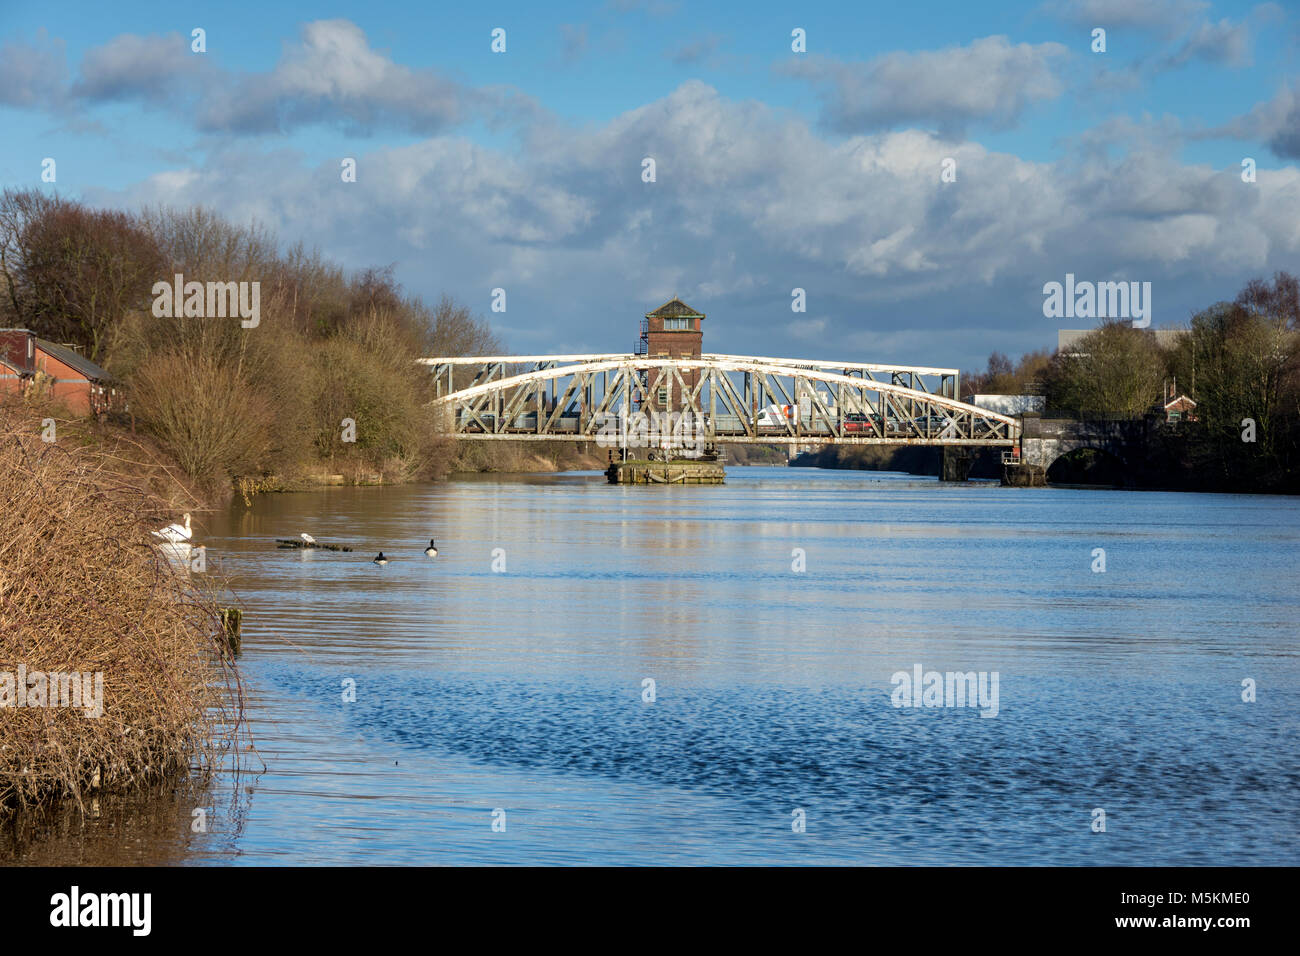 The Barton Road Swing Bridge and the Barton Swing Aqueduct from the Manchester Ship Canal at Barton-upon-Irwell, - Stock Image